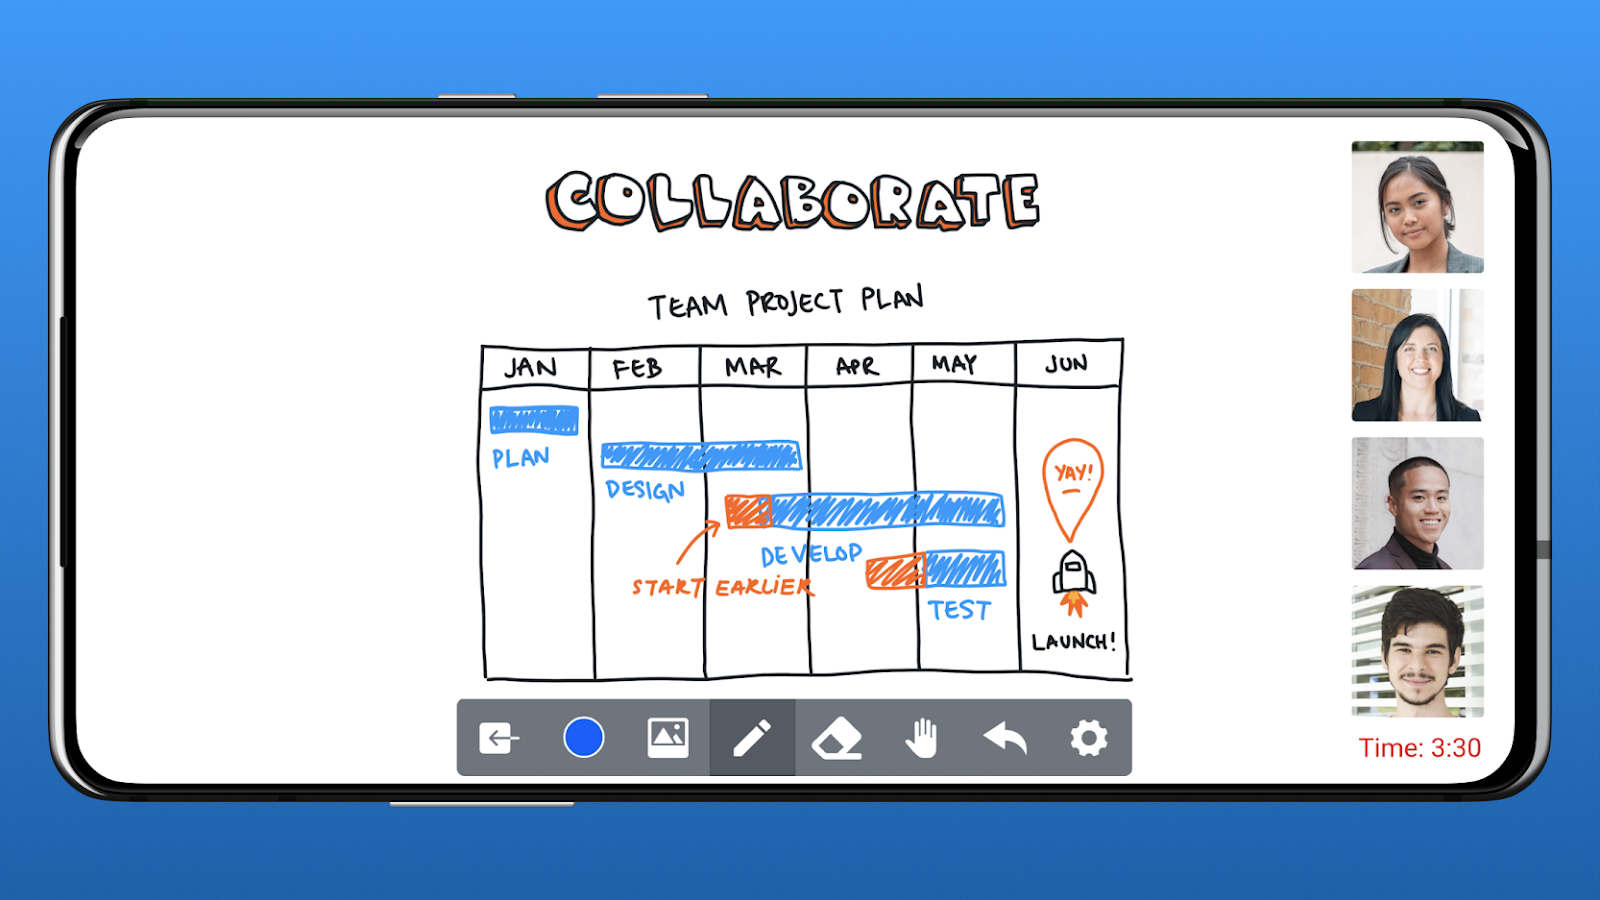 Online teaching ideas: Collaborate on HeyHi's online whiteboard